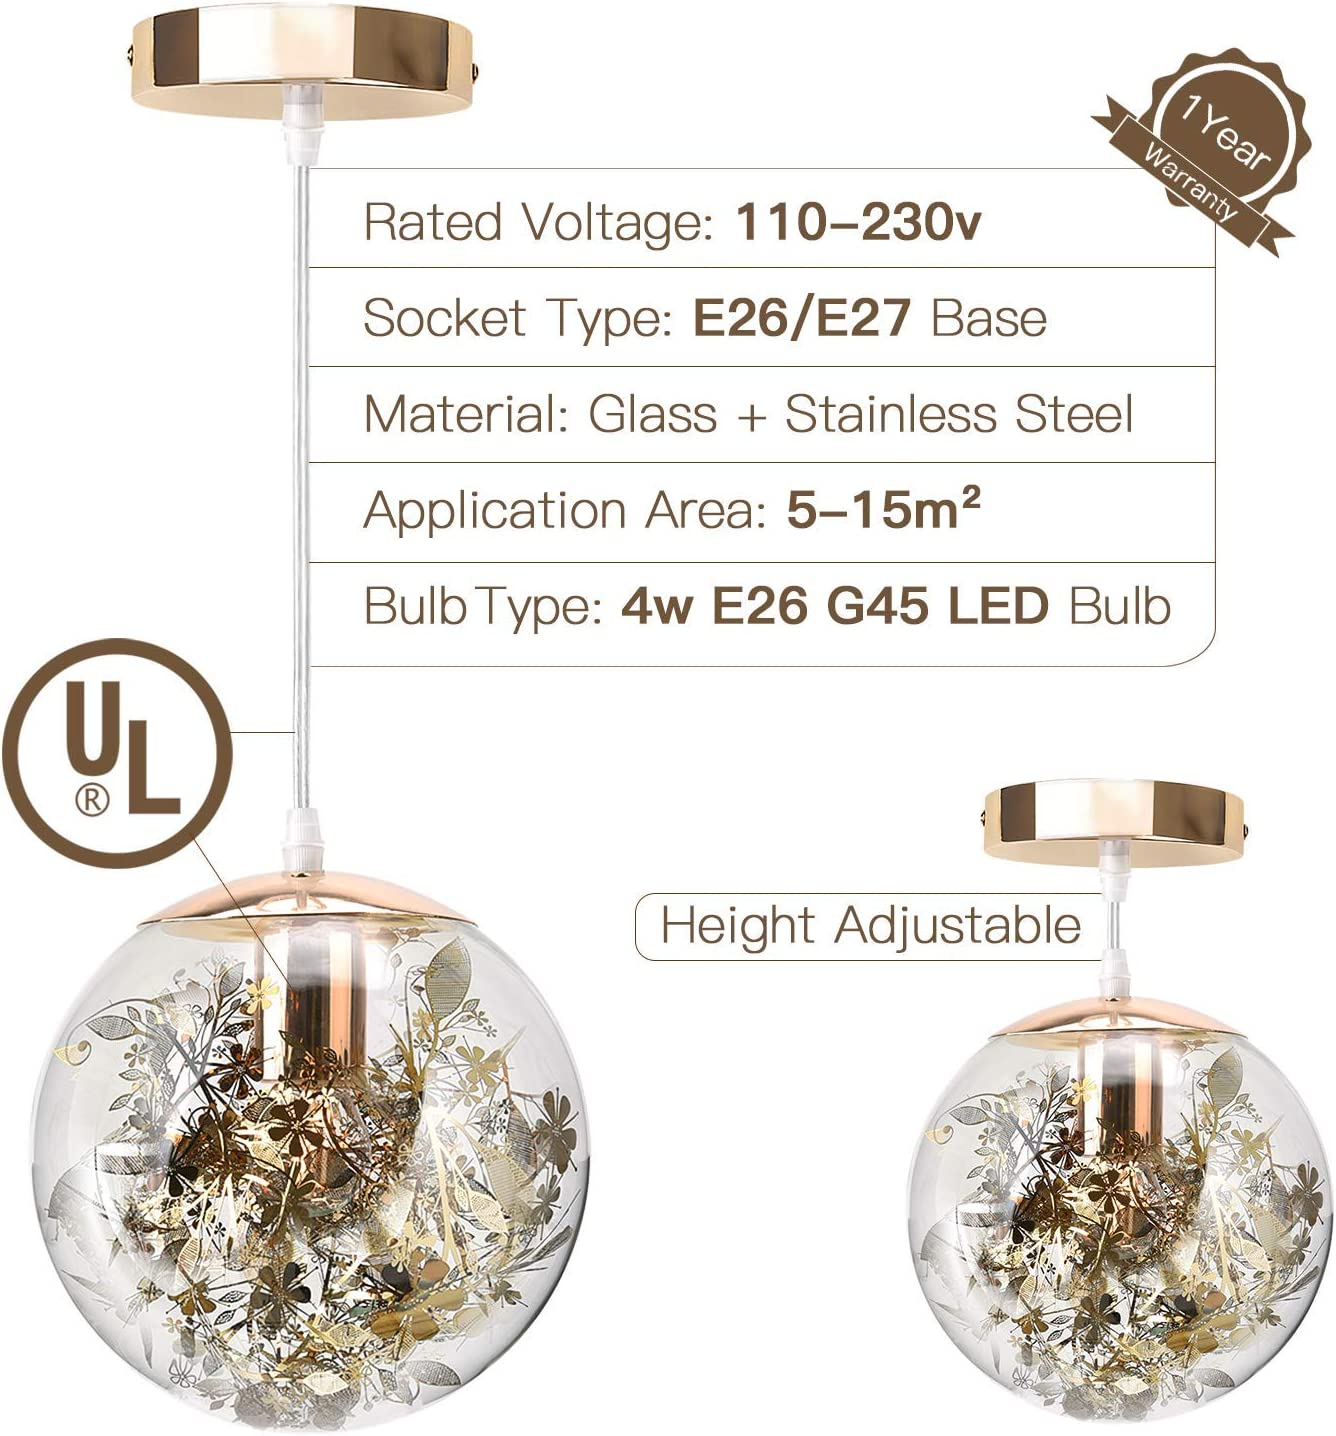 Silver UL Certified Clear Glass Pendant Light with LED Bulb for Indoor D/écor Modern Pendant Light with 7.9 Globe Round Glass Shade for Kitchen Island Dining Room JACKYLED